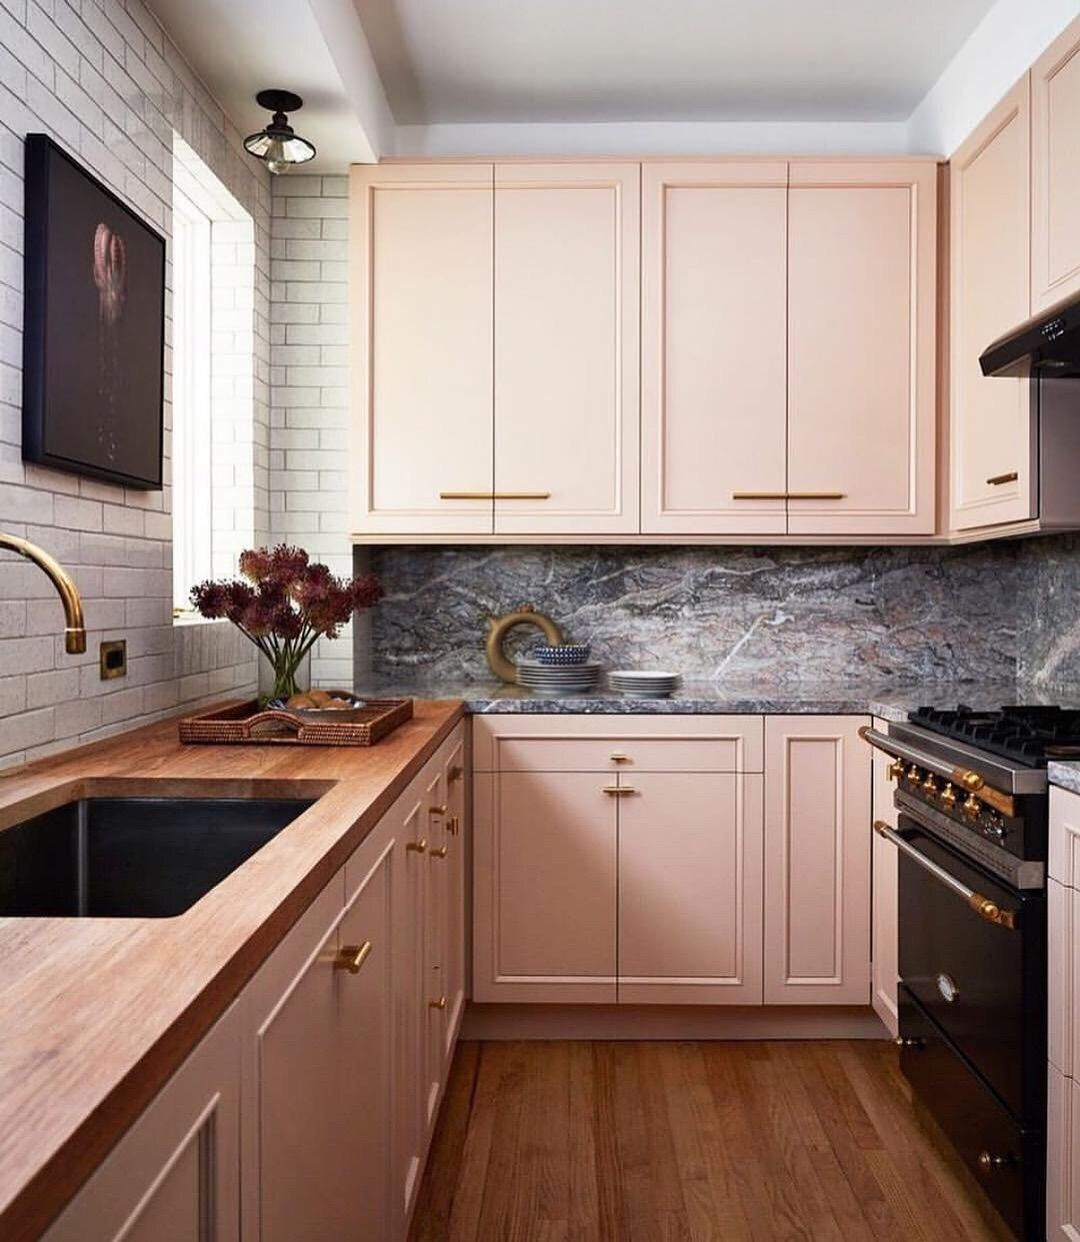 Apartment Therapy On Instagram This Pink Kitchen Is Perfect For Valentine S Day Or Any Day Top Kitchen Designs Interior Design Kitchen Kitchen Design Trends